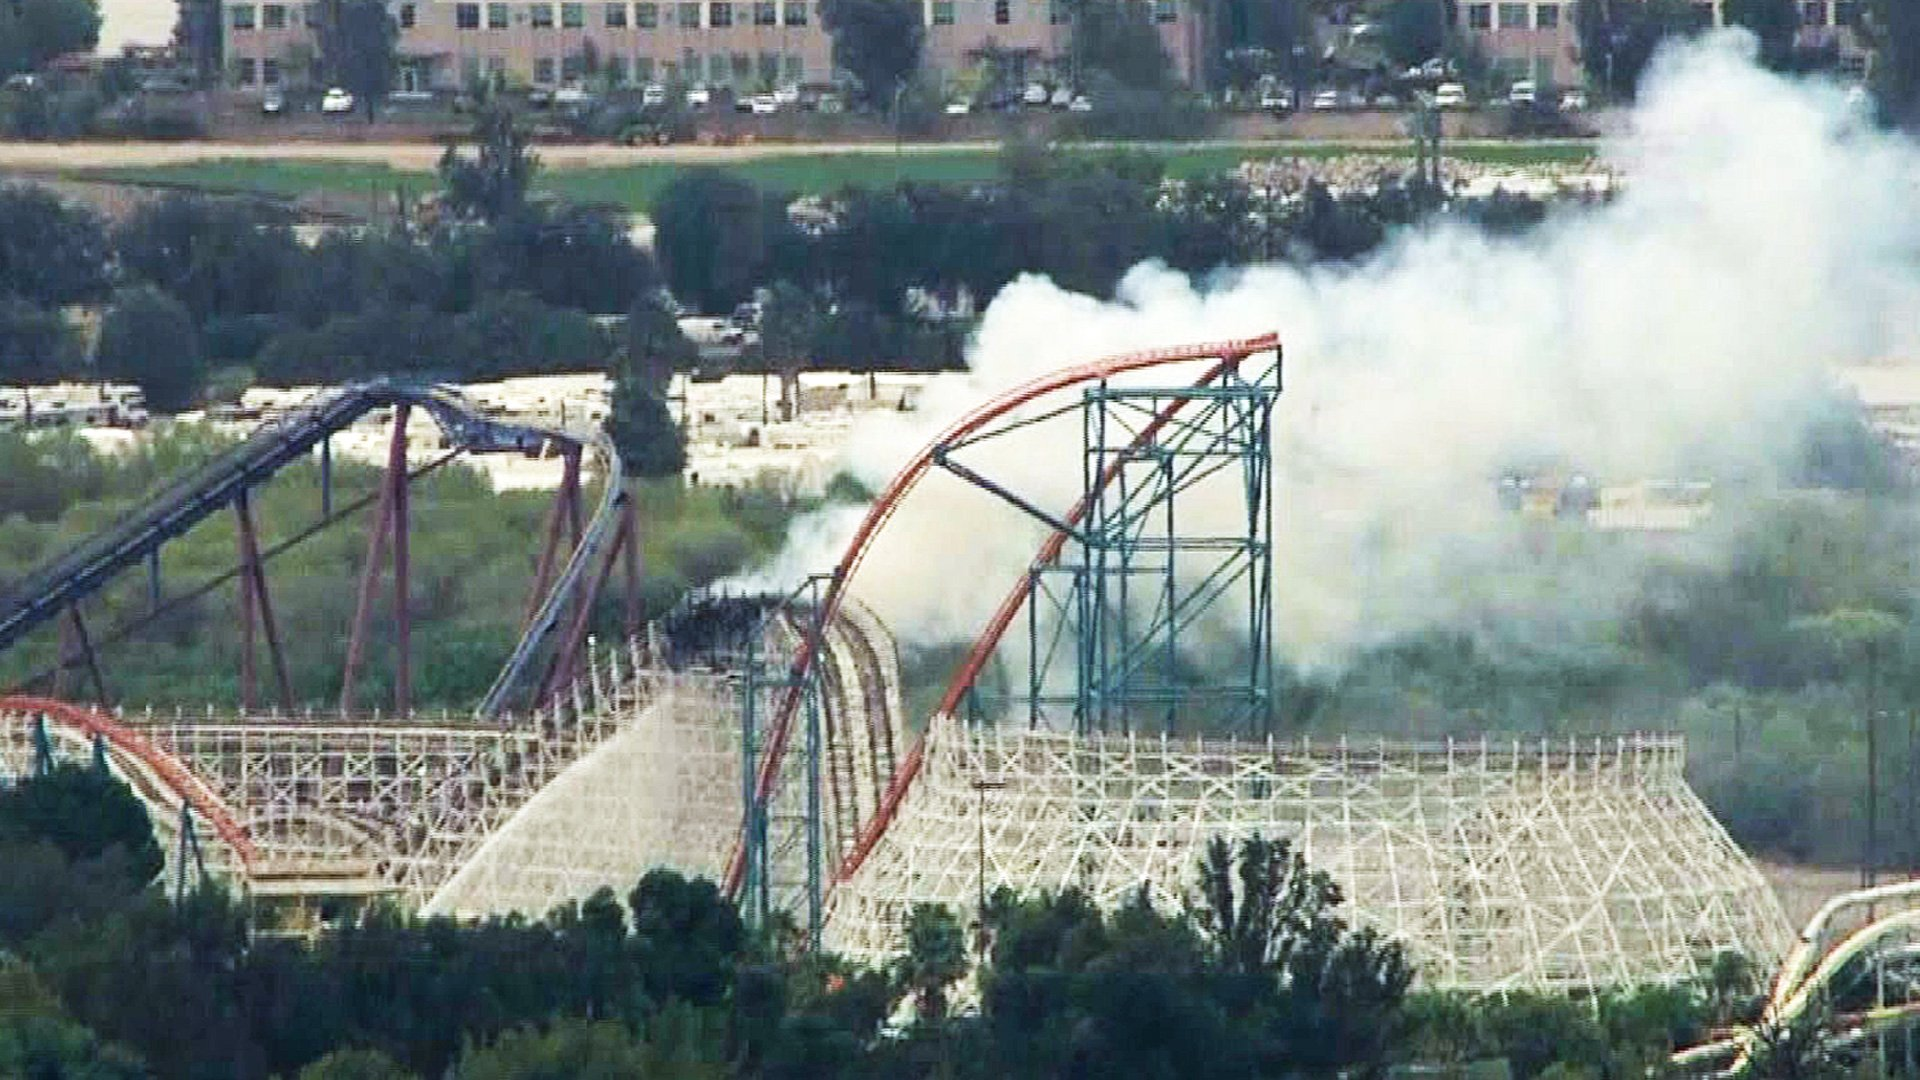 Portion of track collapses after iconic Colossus coaster catches 1920x1080